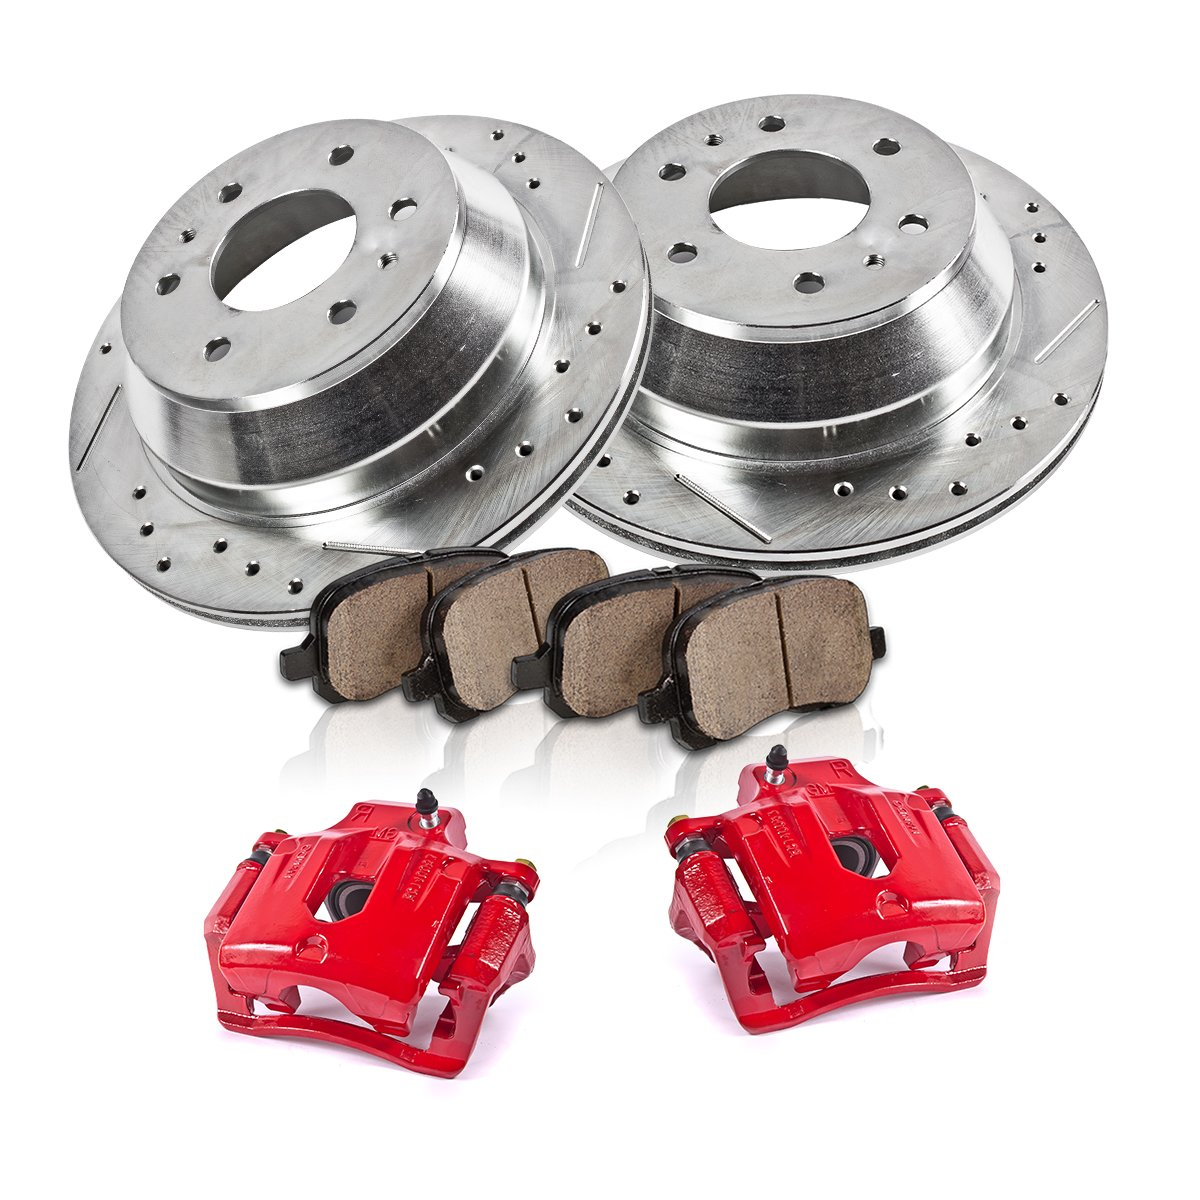 REAR Powder Coated Red [2] Calipers + [2] 6 Lug Rotors + Quiet Low Dust [4] Ceramic Pads Performance Kit Callahan Brake Parts